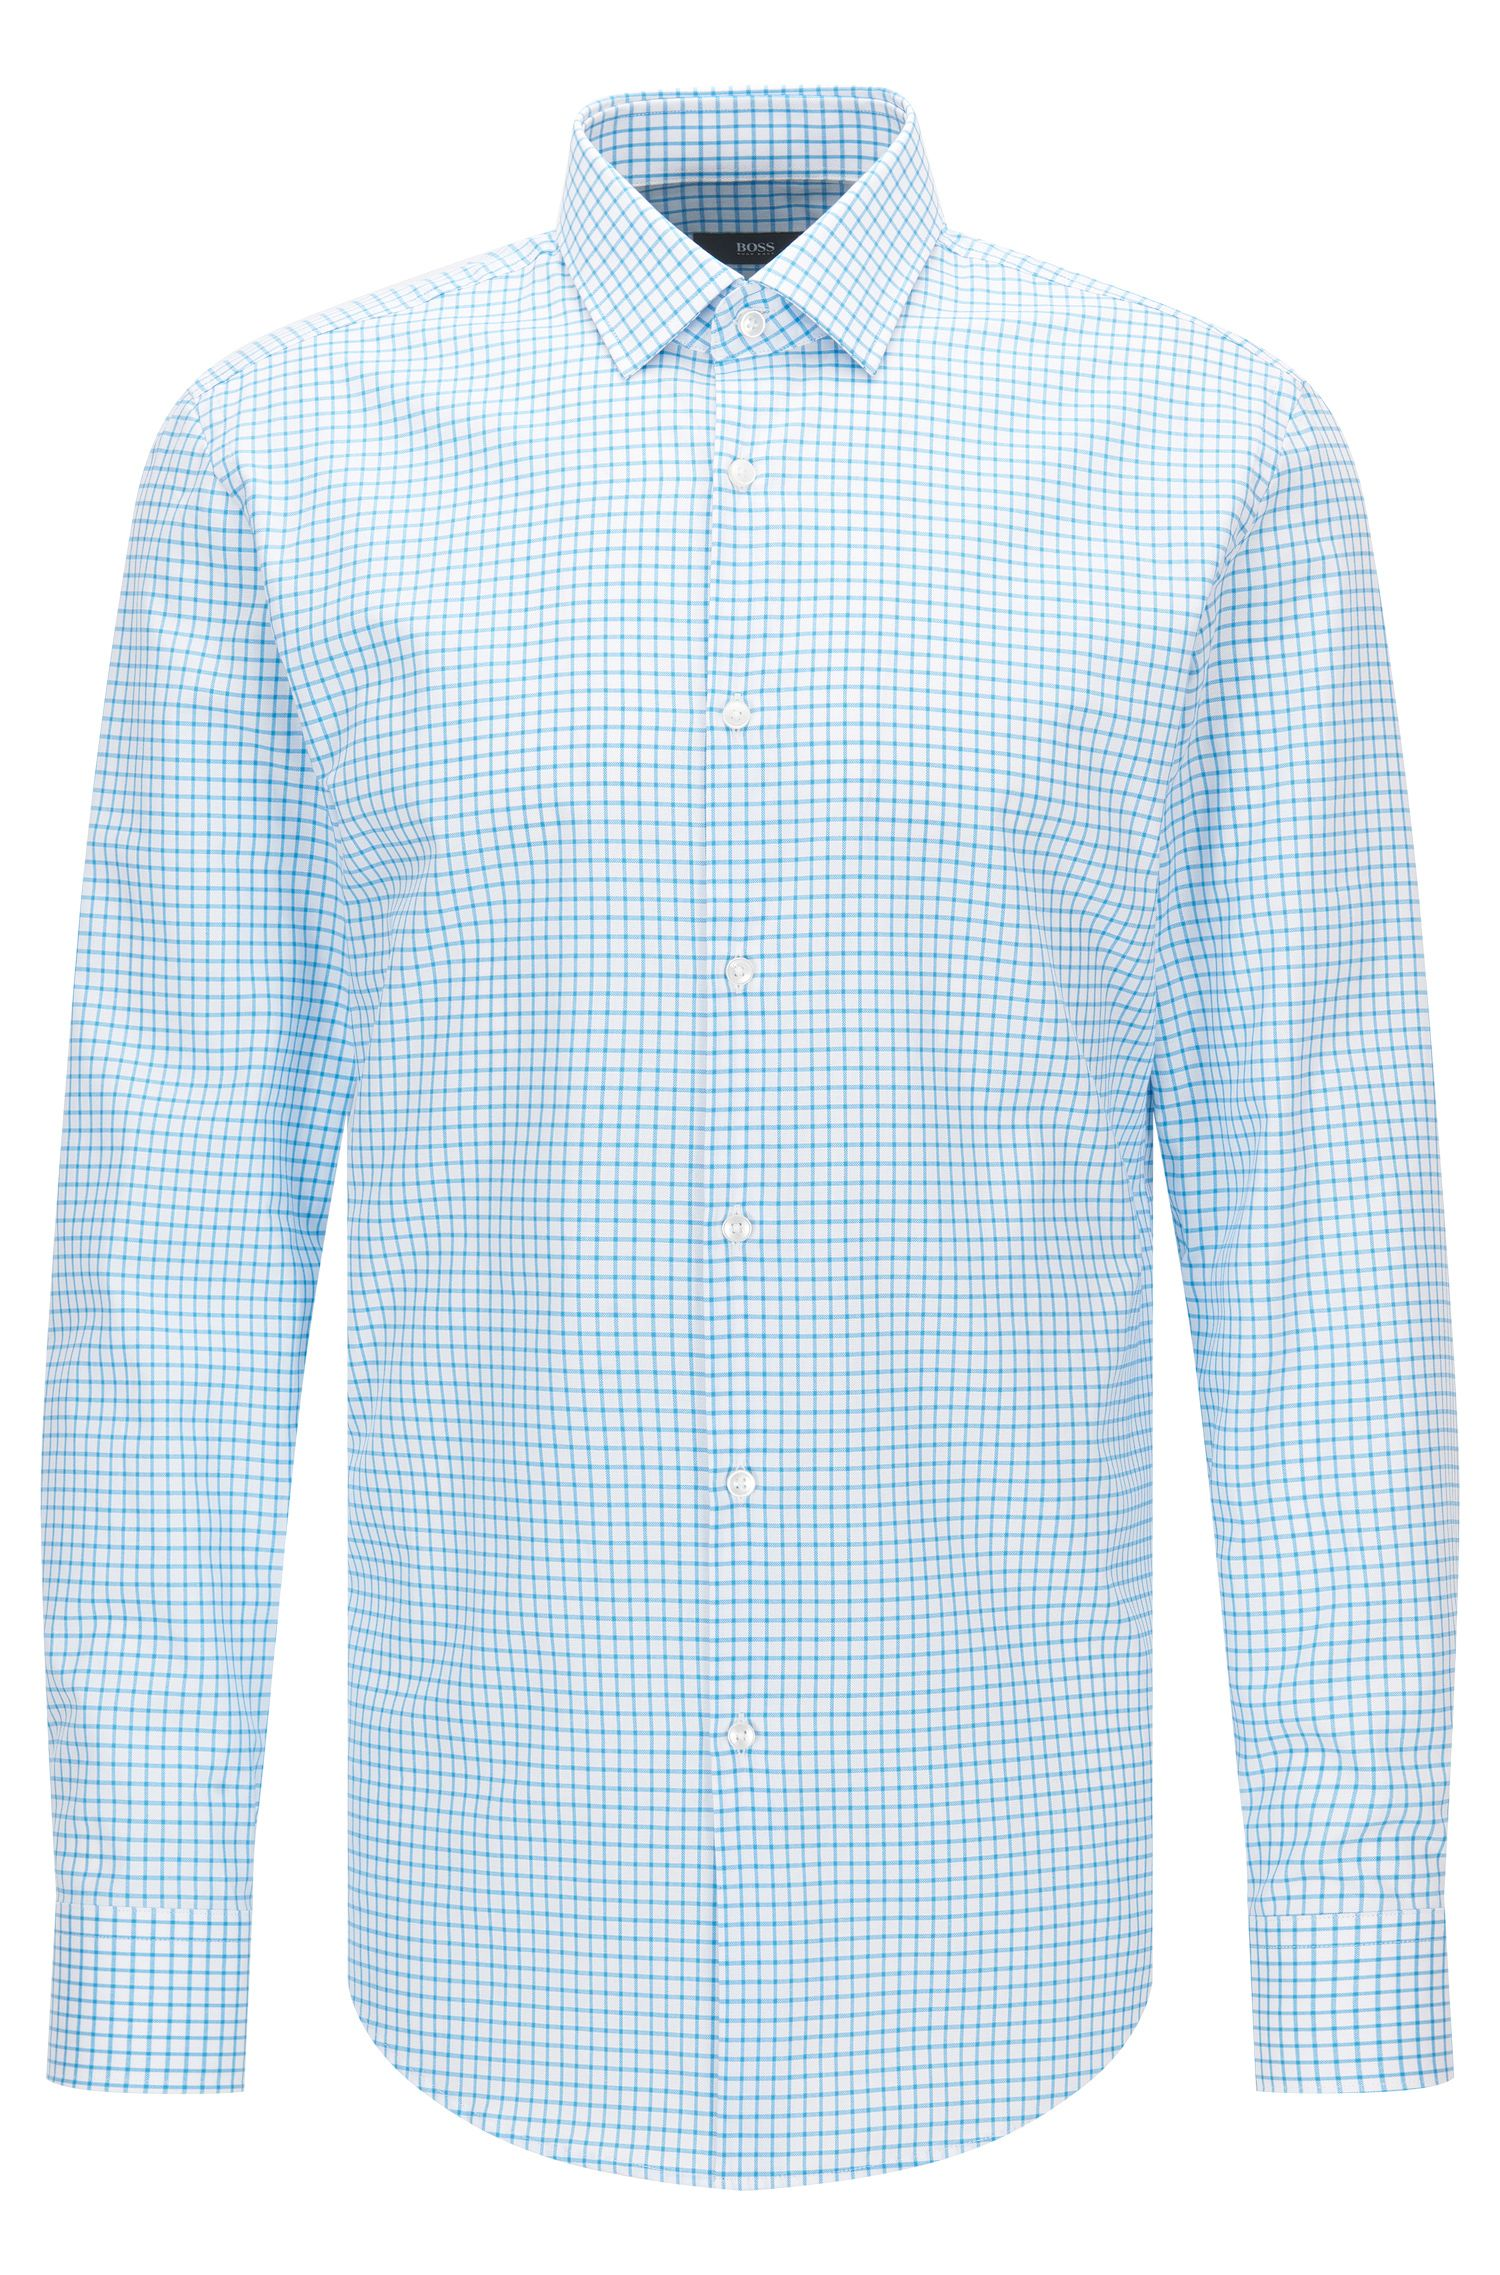 Slim-fit cotton poplin shirt in a plain check